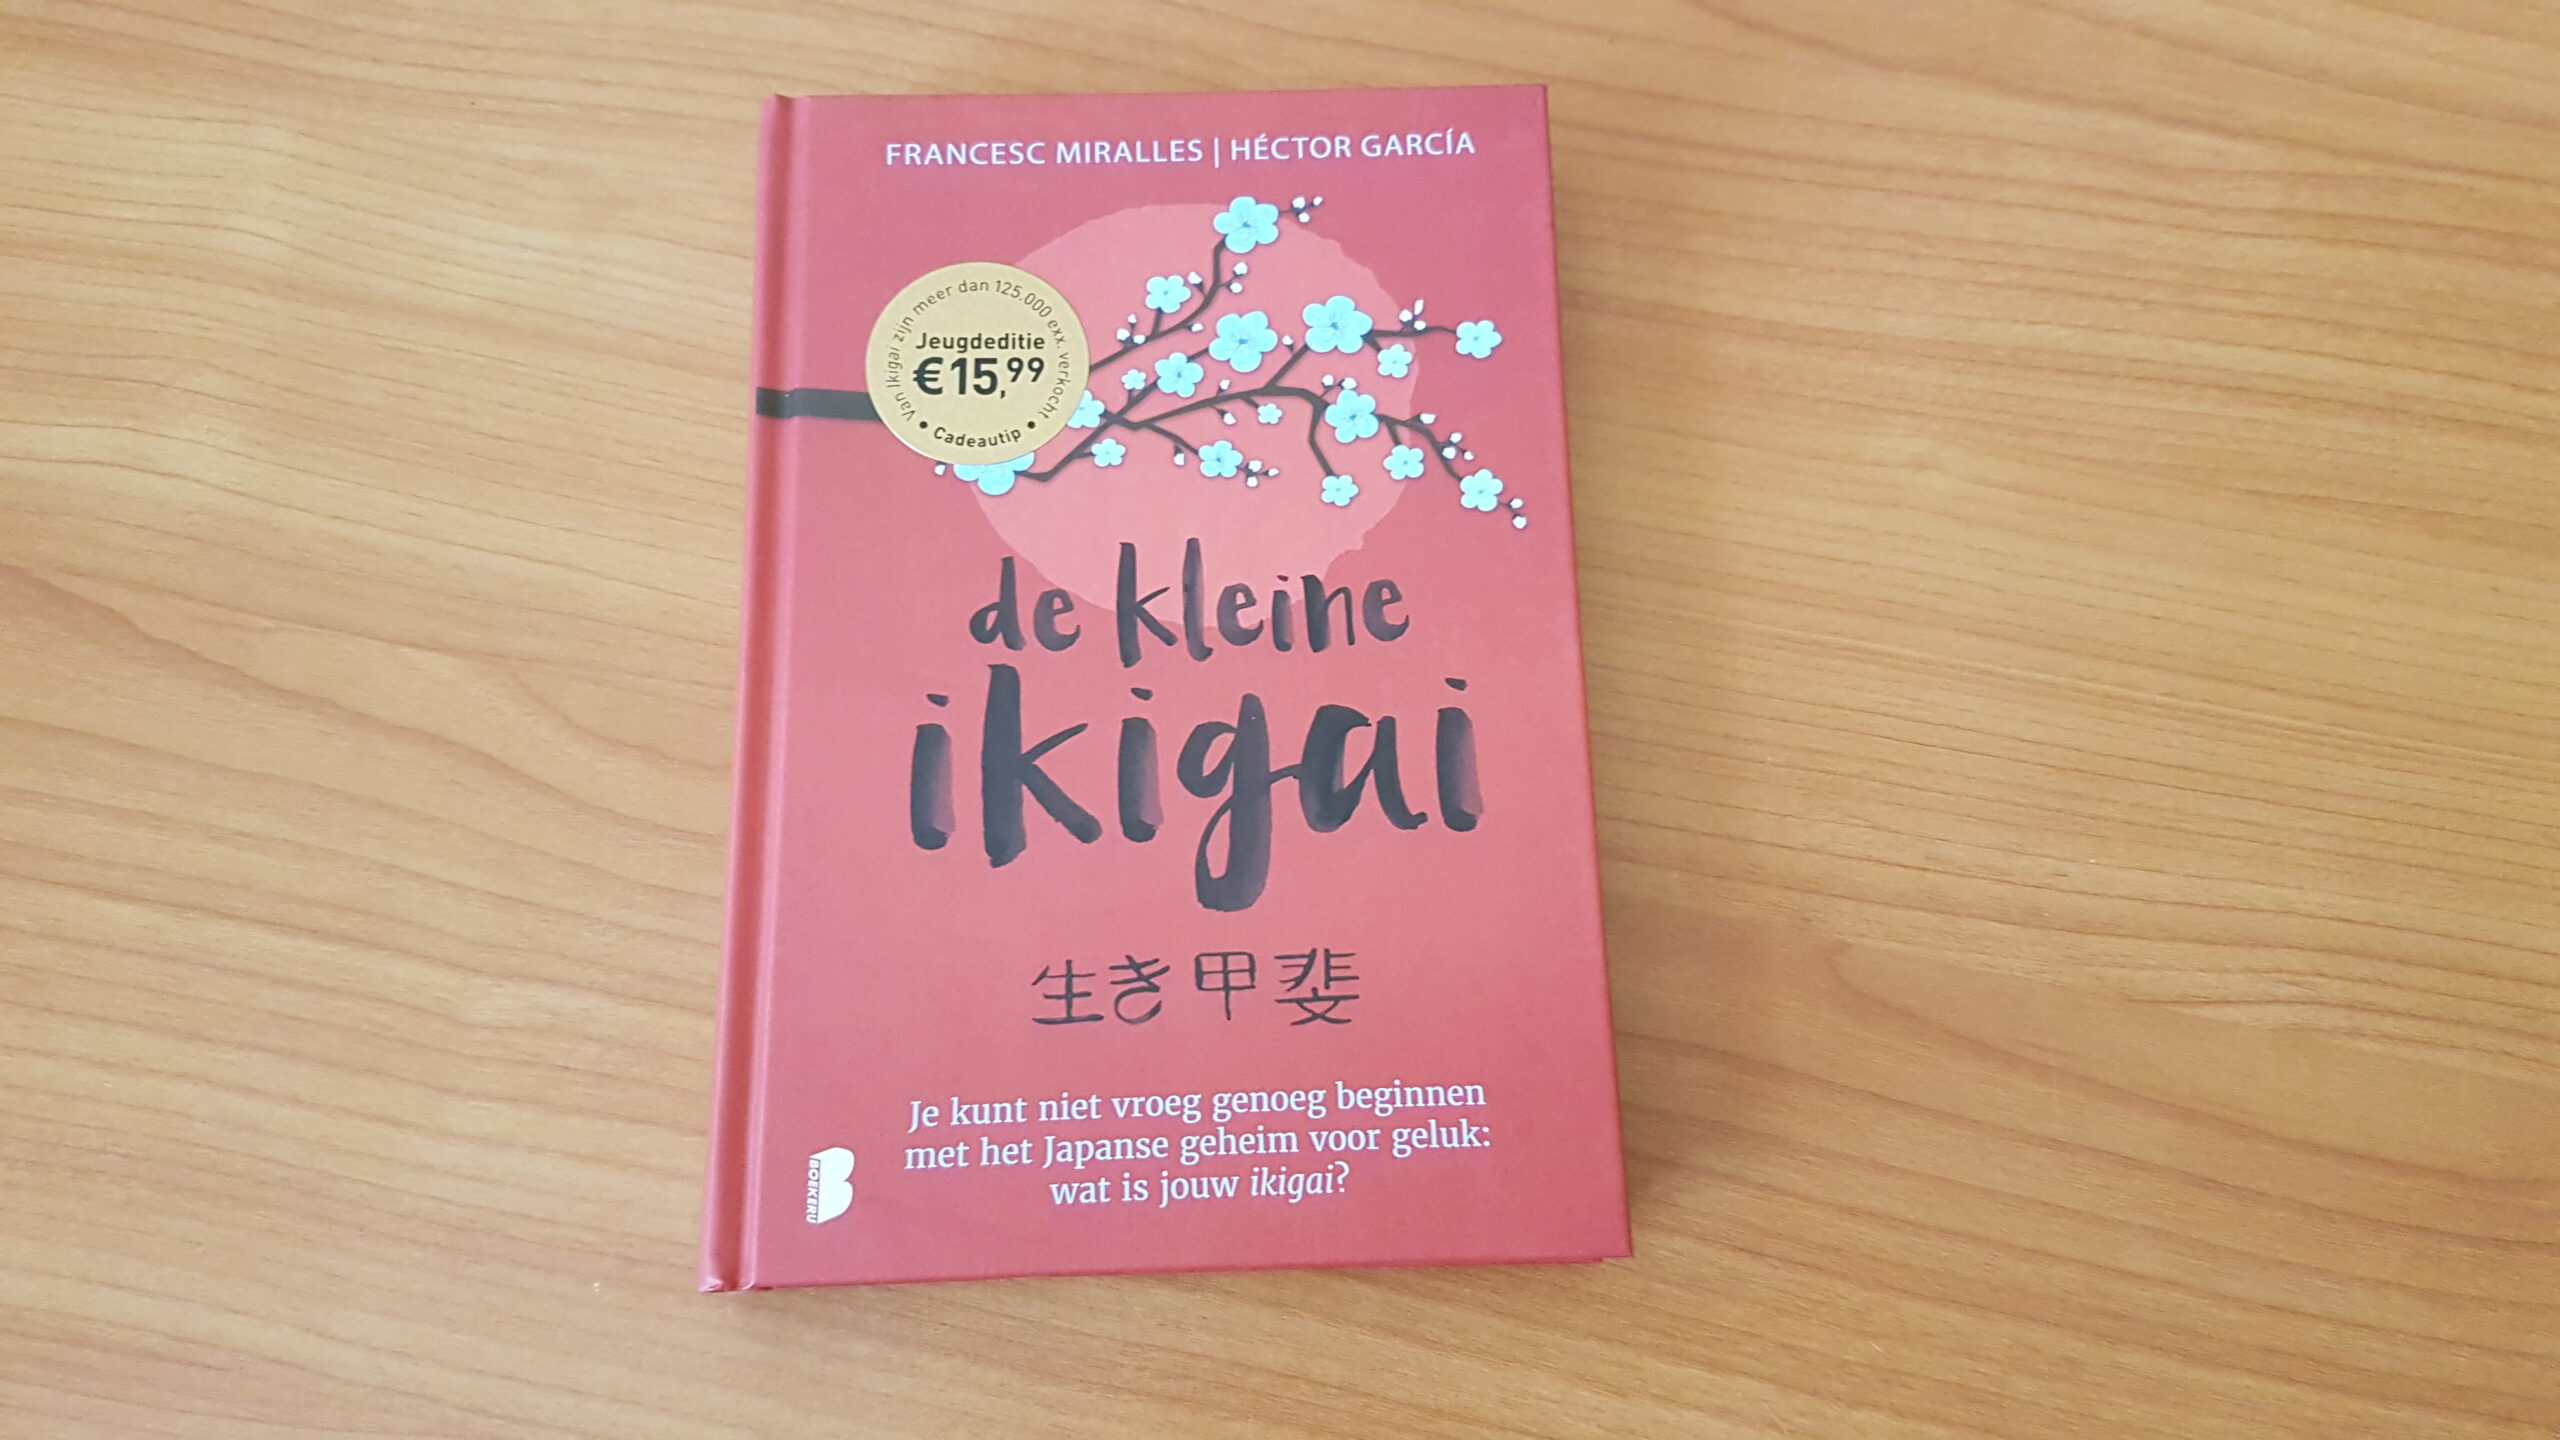 IKIGAI for young readers in den Niederlanden erschienen